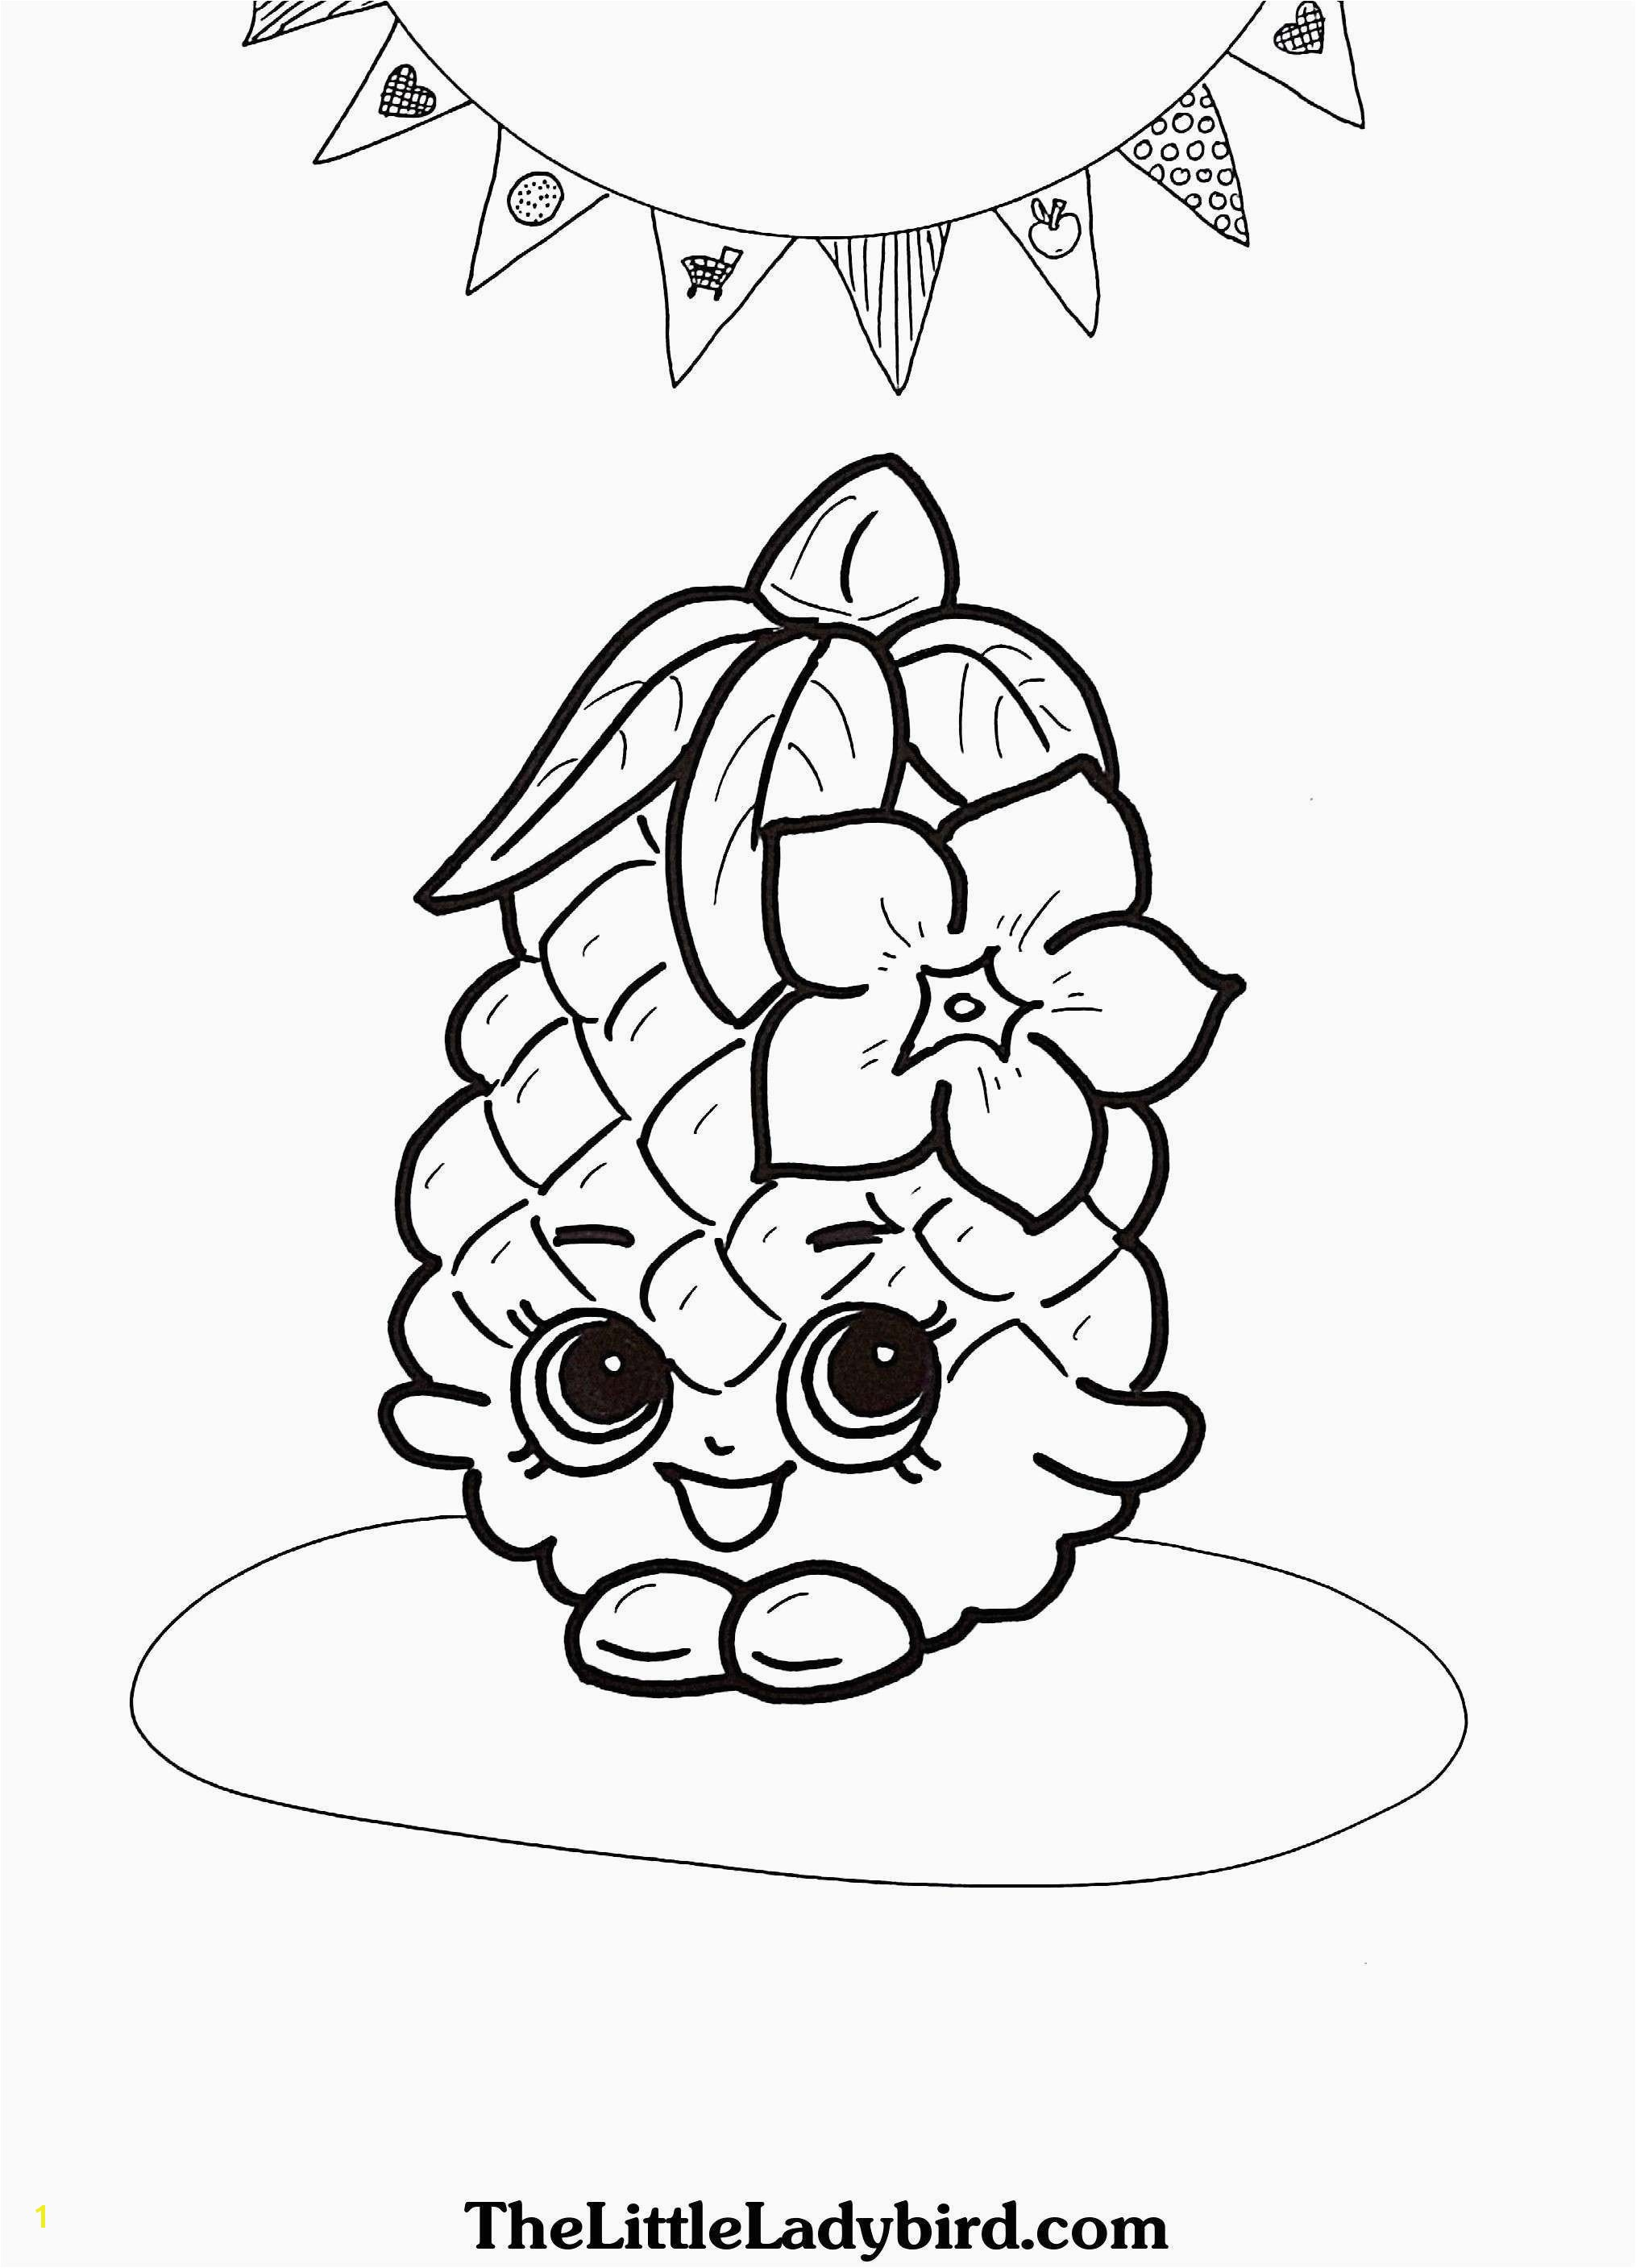 Free Printable Dora Christmas Coloring Pages nick coloring pages 16p book coloring page awesome picture coloring